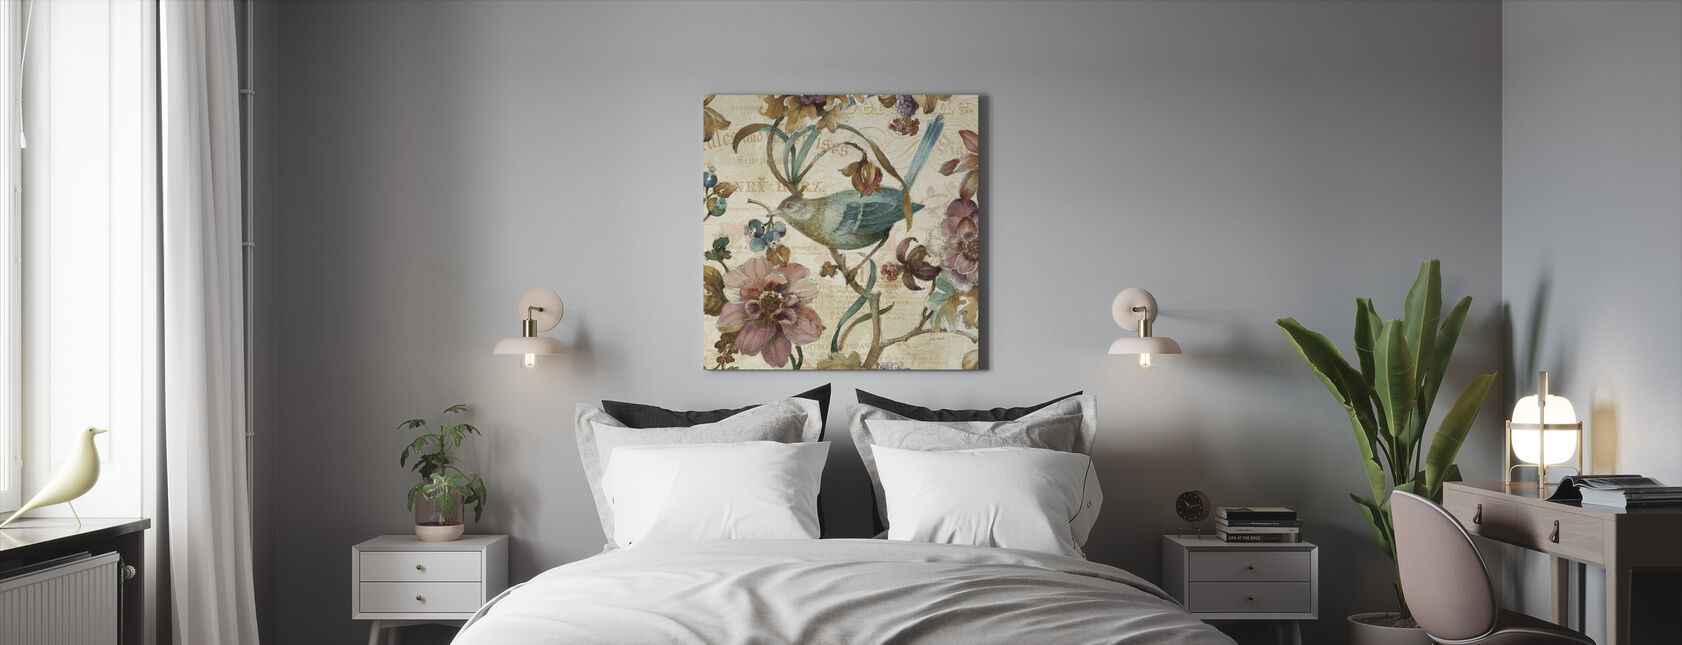 A Garden Moment 2 - Canvas print - Bedroom